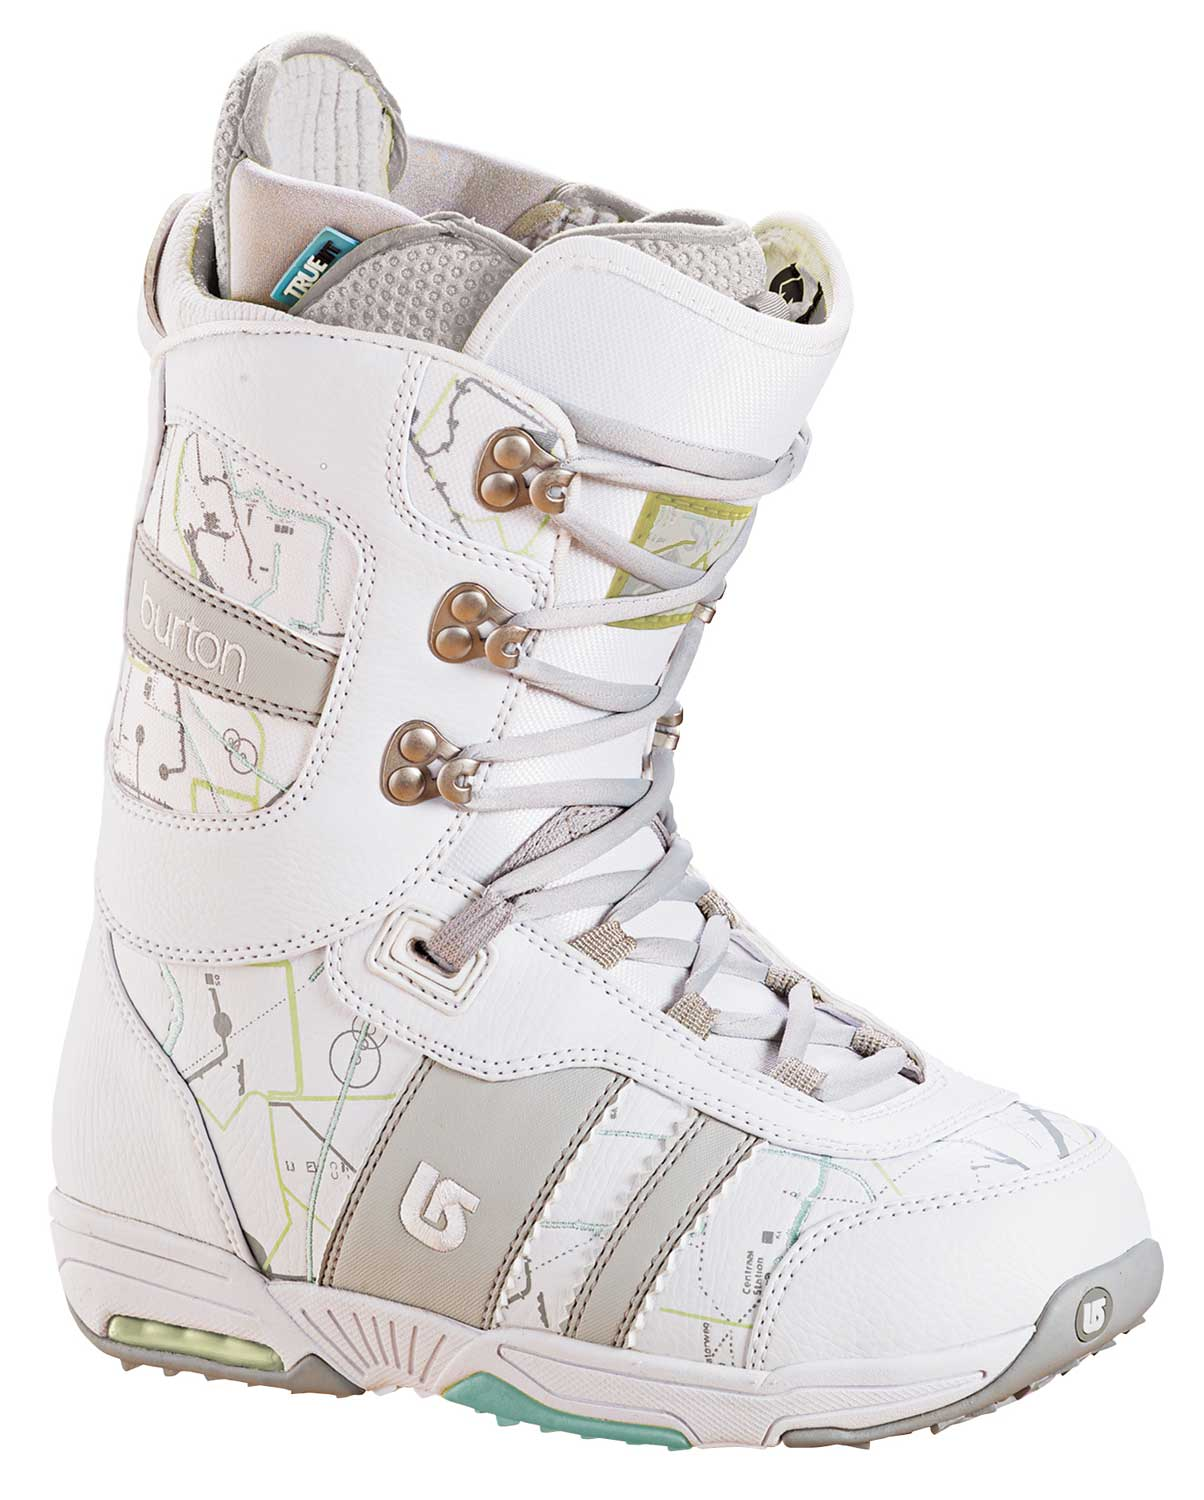 Shop for Burton Sapphire Snowboard Boot White/Lt Grey - Women's